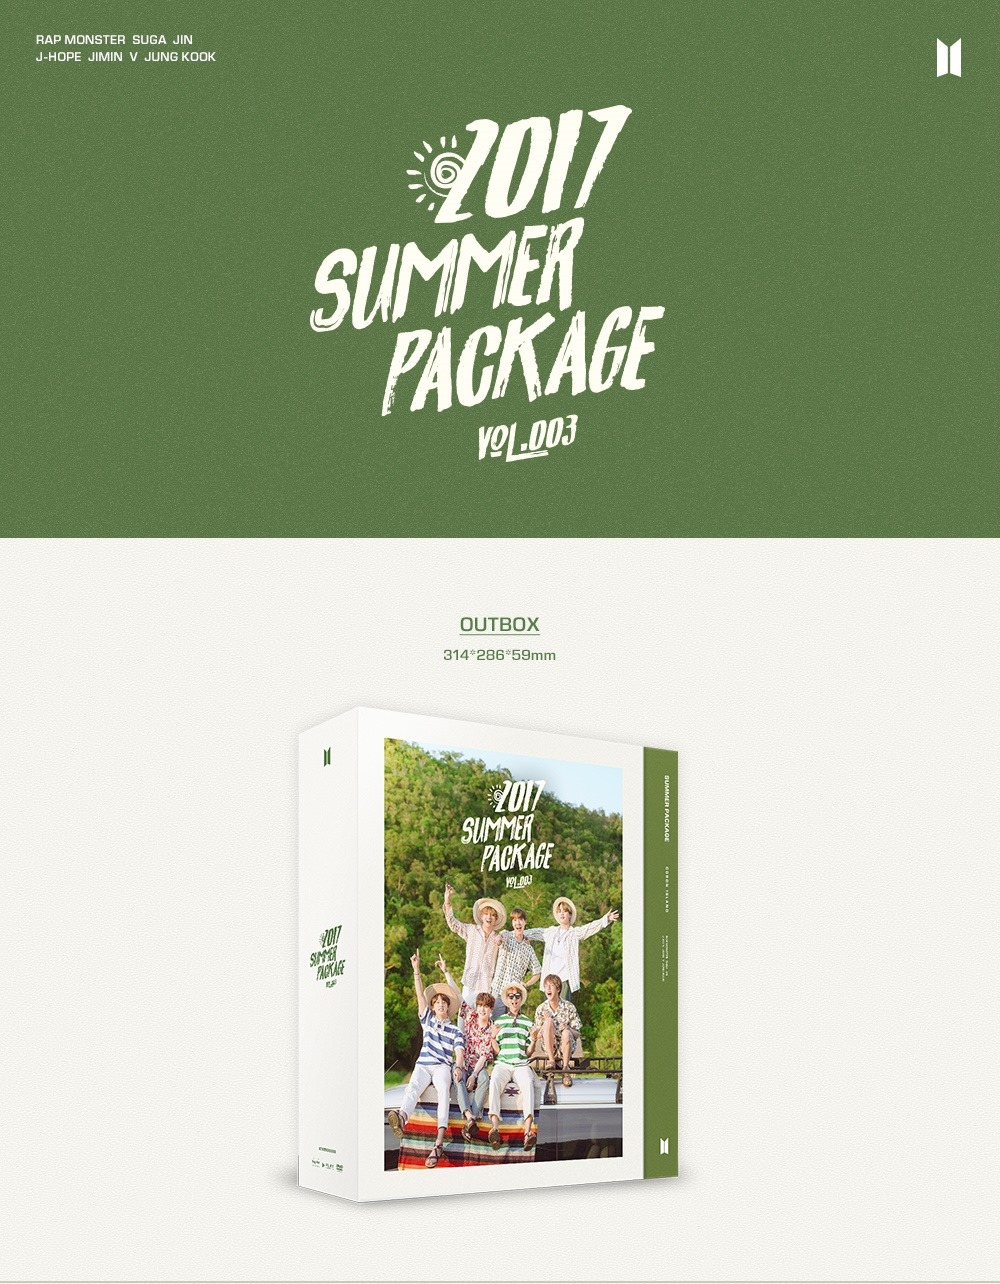 Awesome Bts Summer Package 2014 Eng Sub Dramacool wallpapers to download for free greenvirals